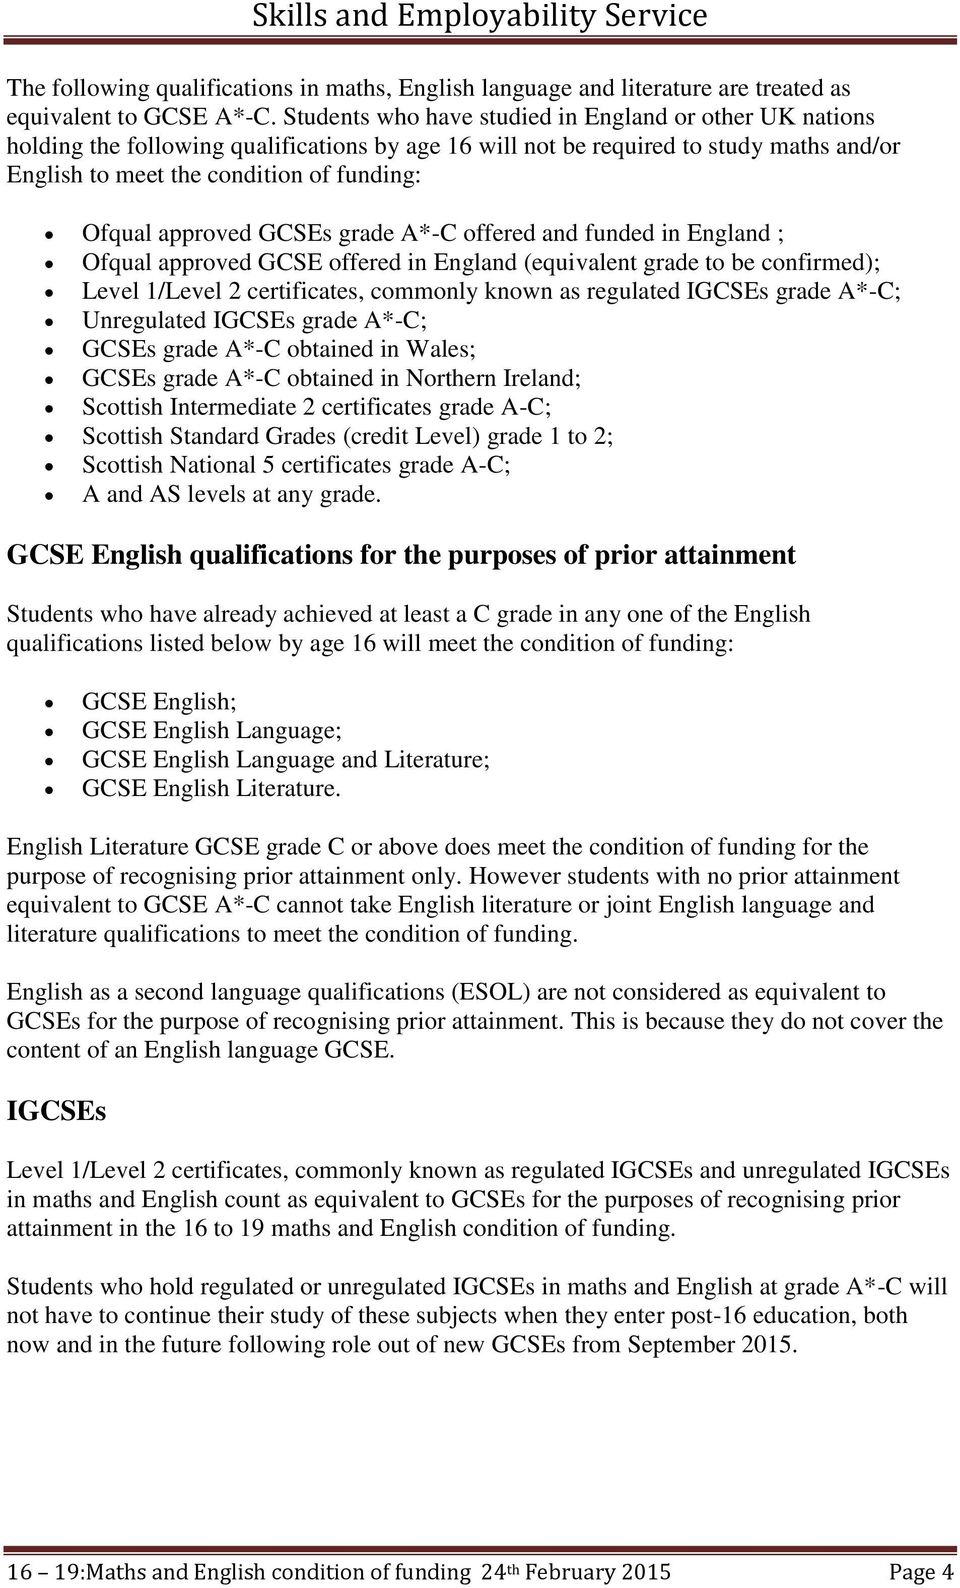 approved GCSEs grade A*-C offered and funded in England ; Ofqual approved GCSE offered in England (equivalent grade to be confirmed); Level 1/Level 2 certificates, commonly known as regulated IGCSEs